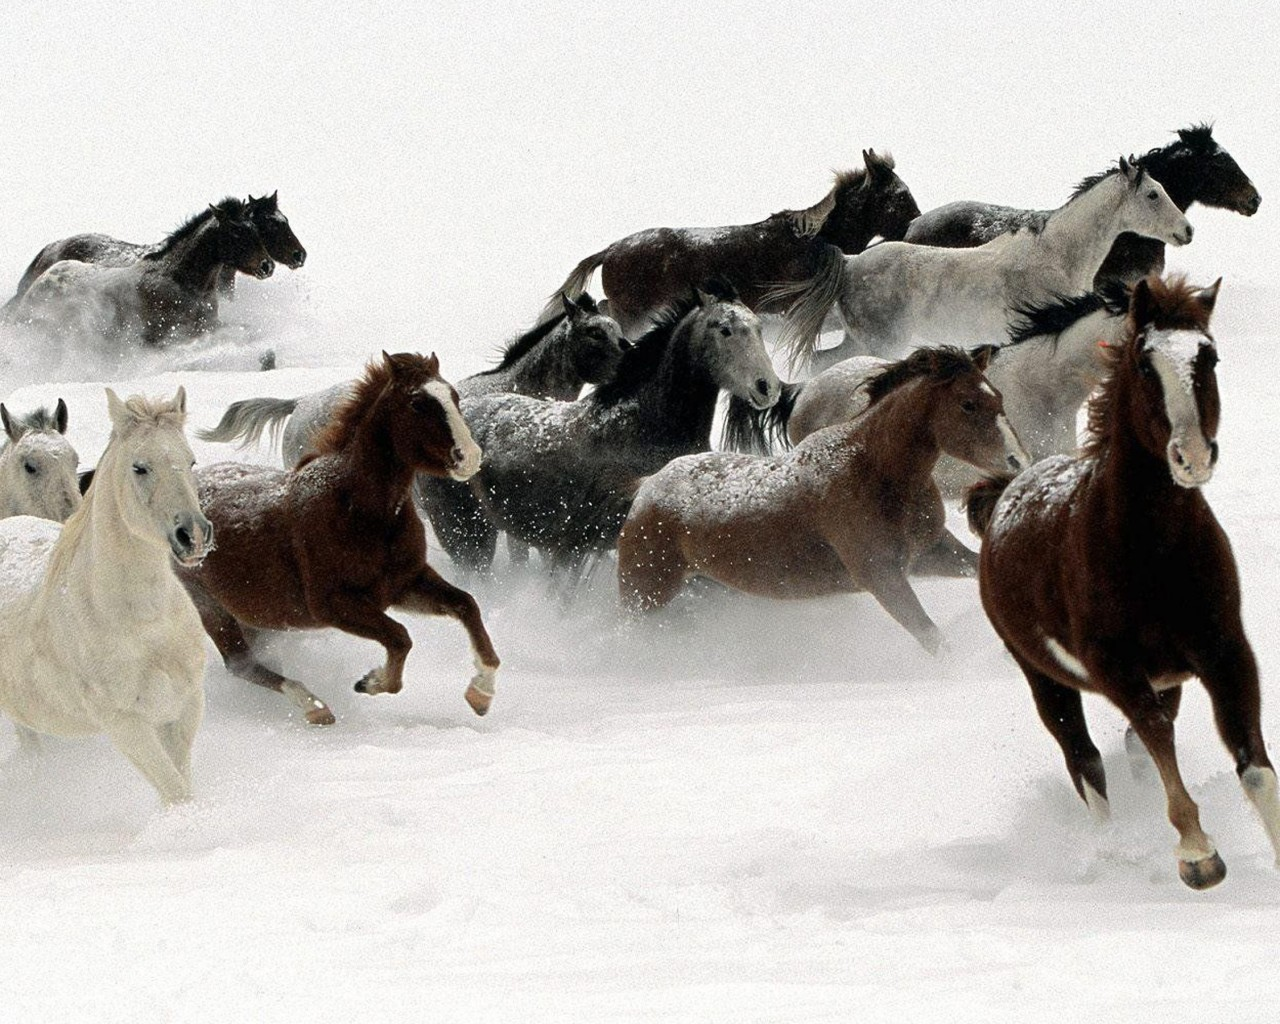 Beautiful Horses In Different Colors Running In The Snow 1280x1024